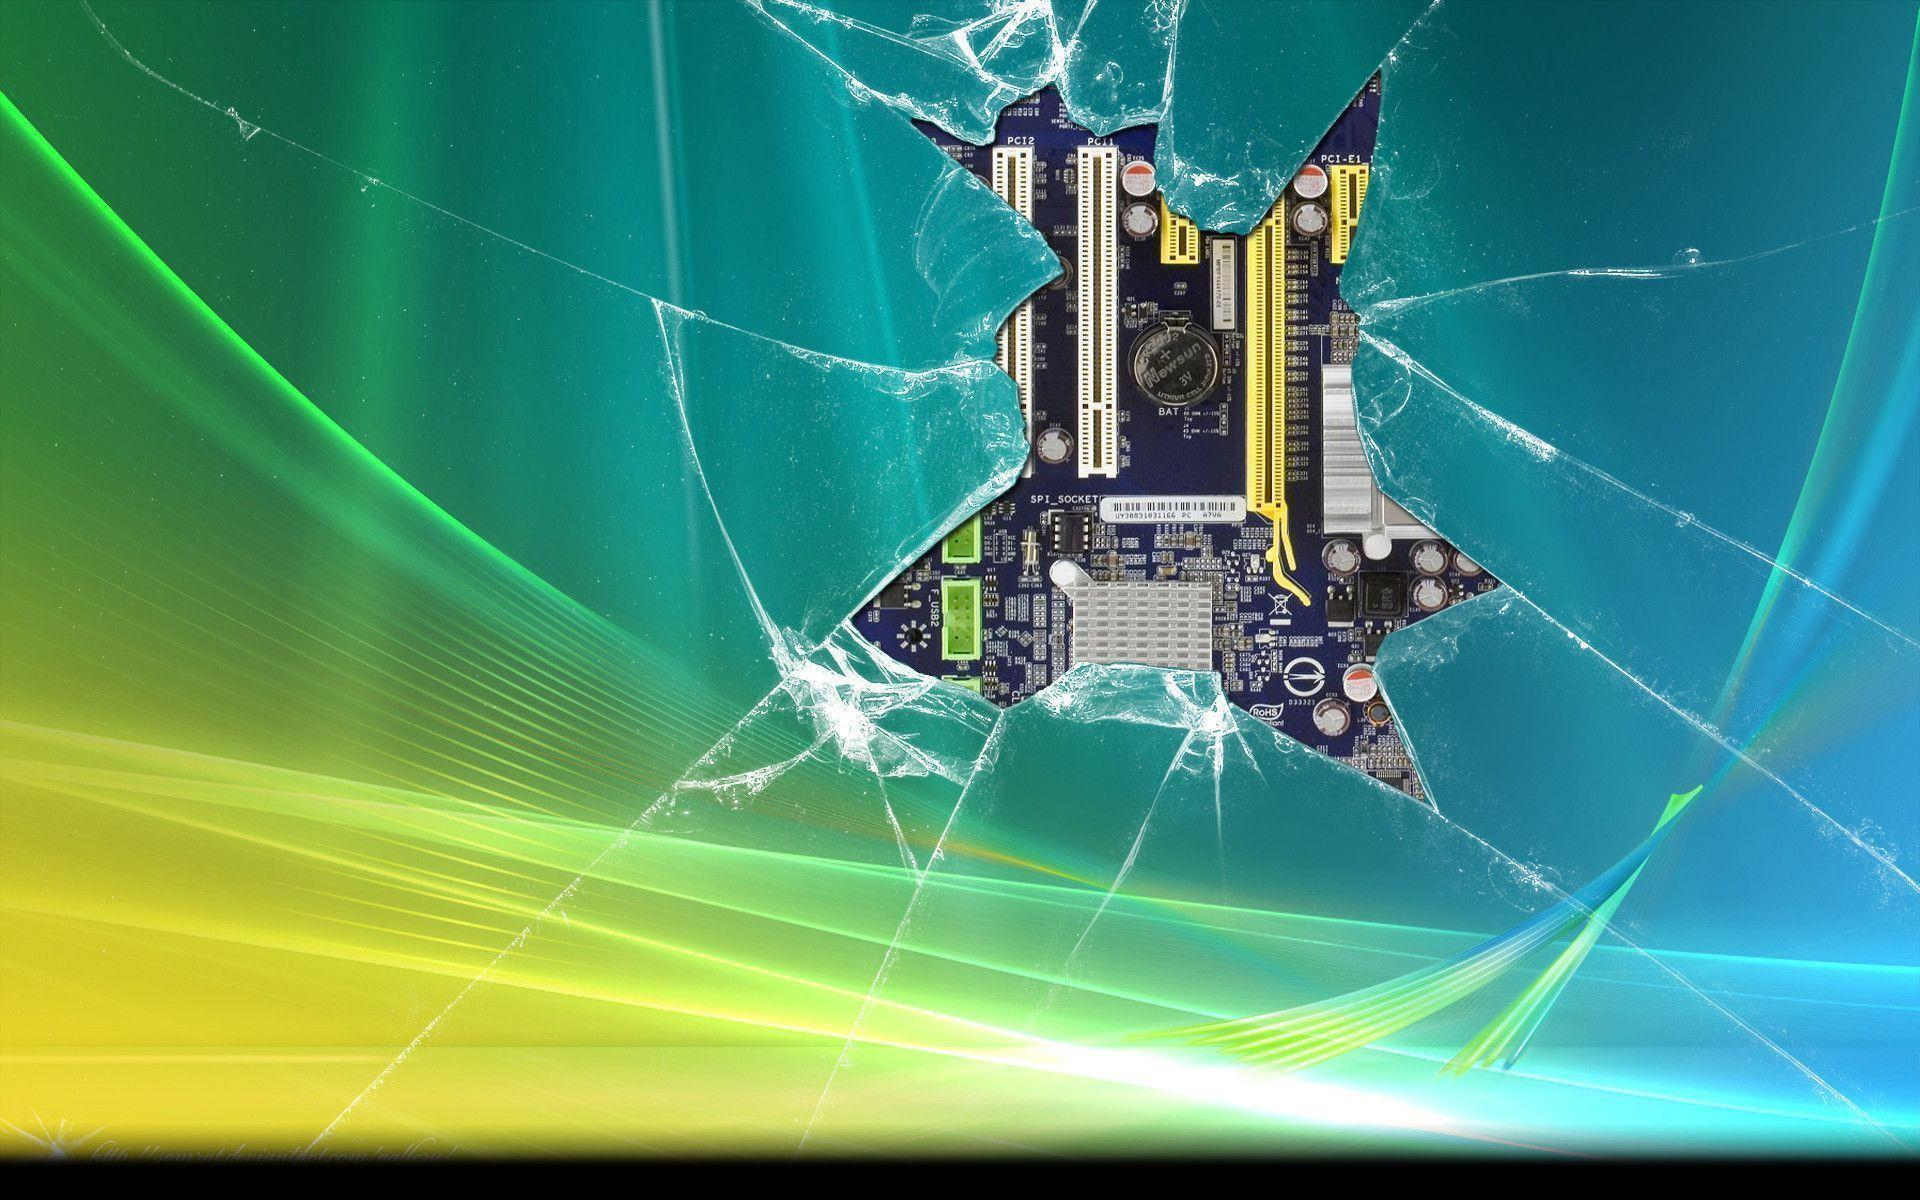 Windows 7 Broken Screen Free Wallpapers